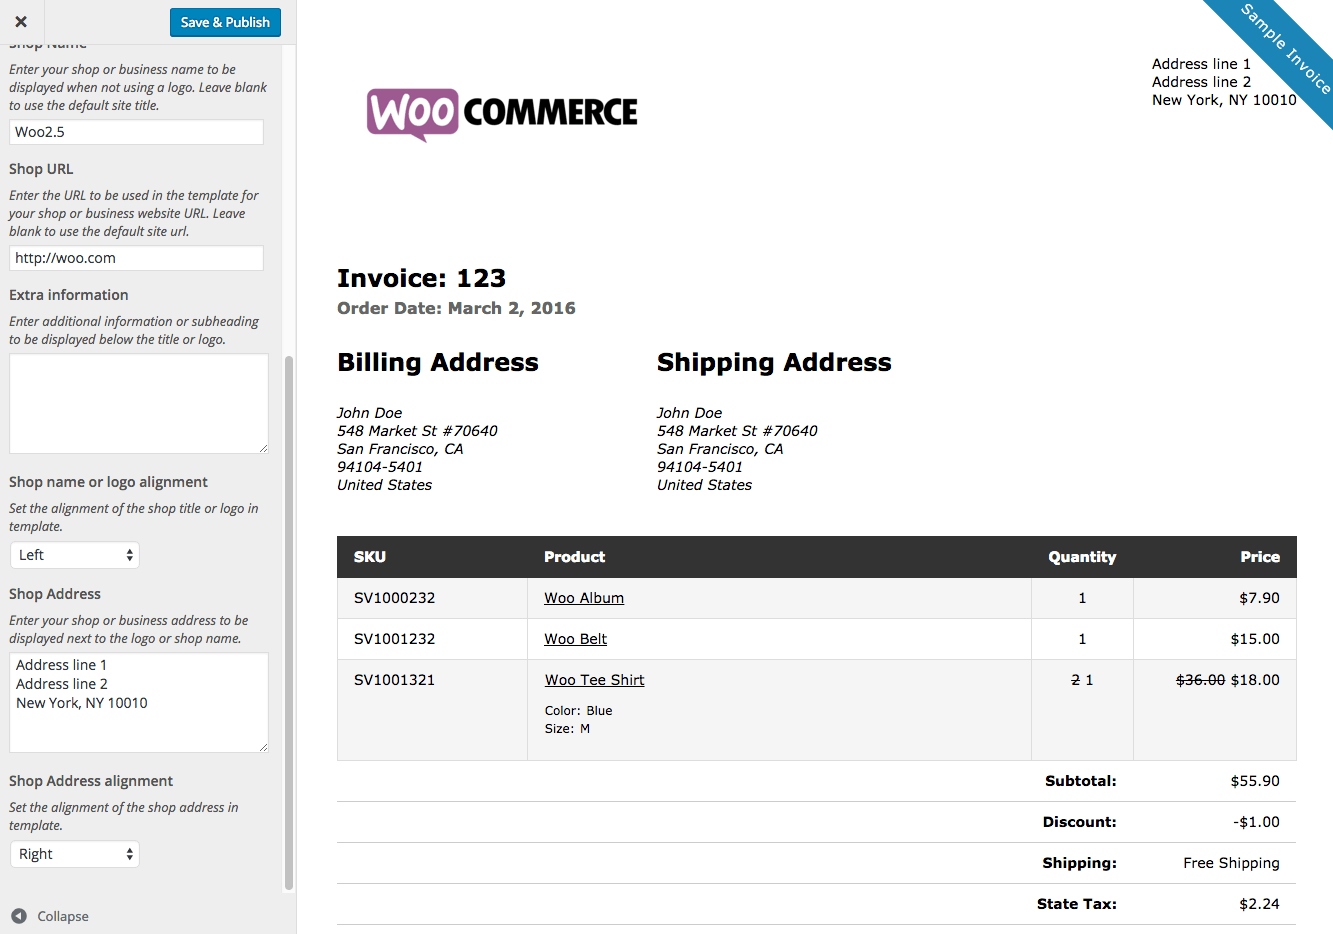 Hius  Pretty Woocommerce Print Invoices Amp Packing Lists  Woocommerce Docs With Marvelous Woocommerce Print Invoices  Packing Lists Customizer With Divine Personalised Invoice Books Duplicate Also Invoice Template Nz In Addition Invoice Payment Terms And Conditions And Parking Invoice As Well As Credit Invoice Template Additionally Free Online Printable Invoices From Docswoocommercecom With Hius  Marvelous Woocommerce Print Invoices Amp Packing Lists  Woocommerce Docs With Divine Woocommerce Print Invoices  Packing Lists Customizer And Pretty Personalised Invoice Books Duplicate Also Invoice Template Nz In Addition Invoice Payment Terms And Conditions From Docswoocommercecom